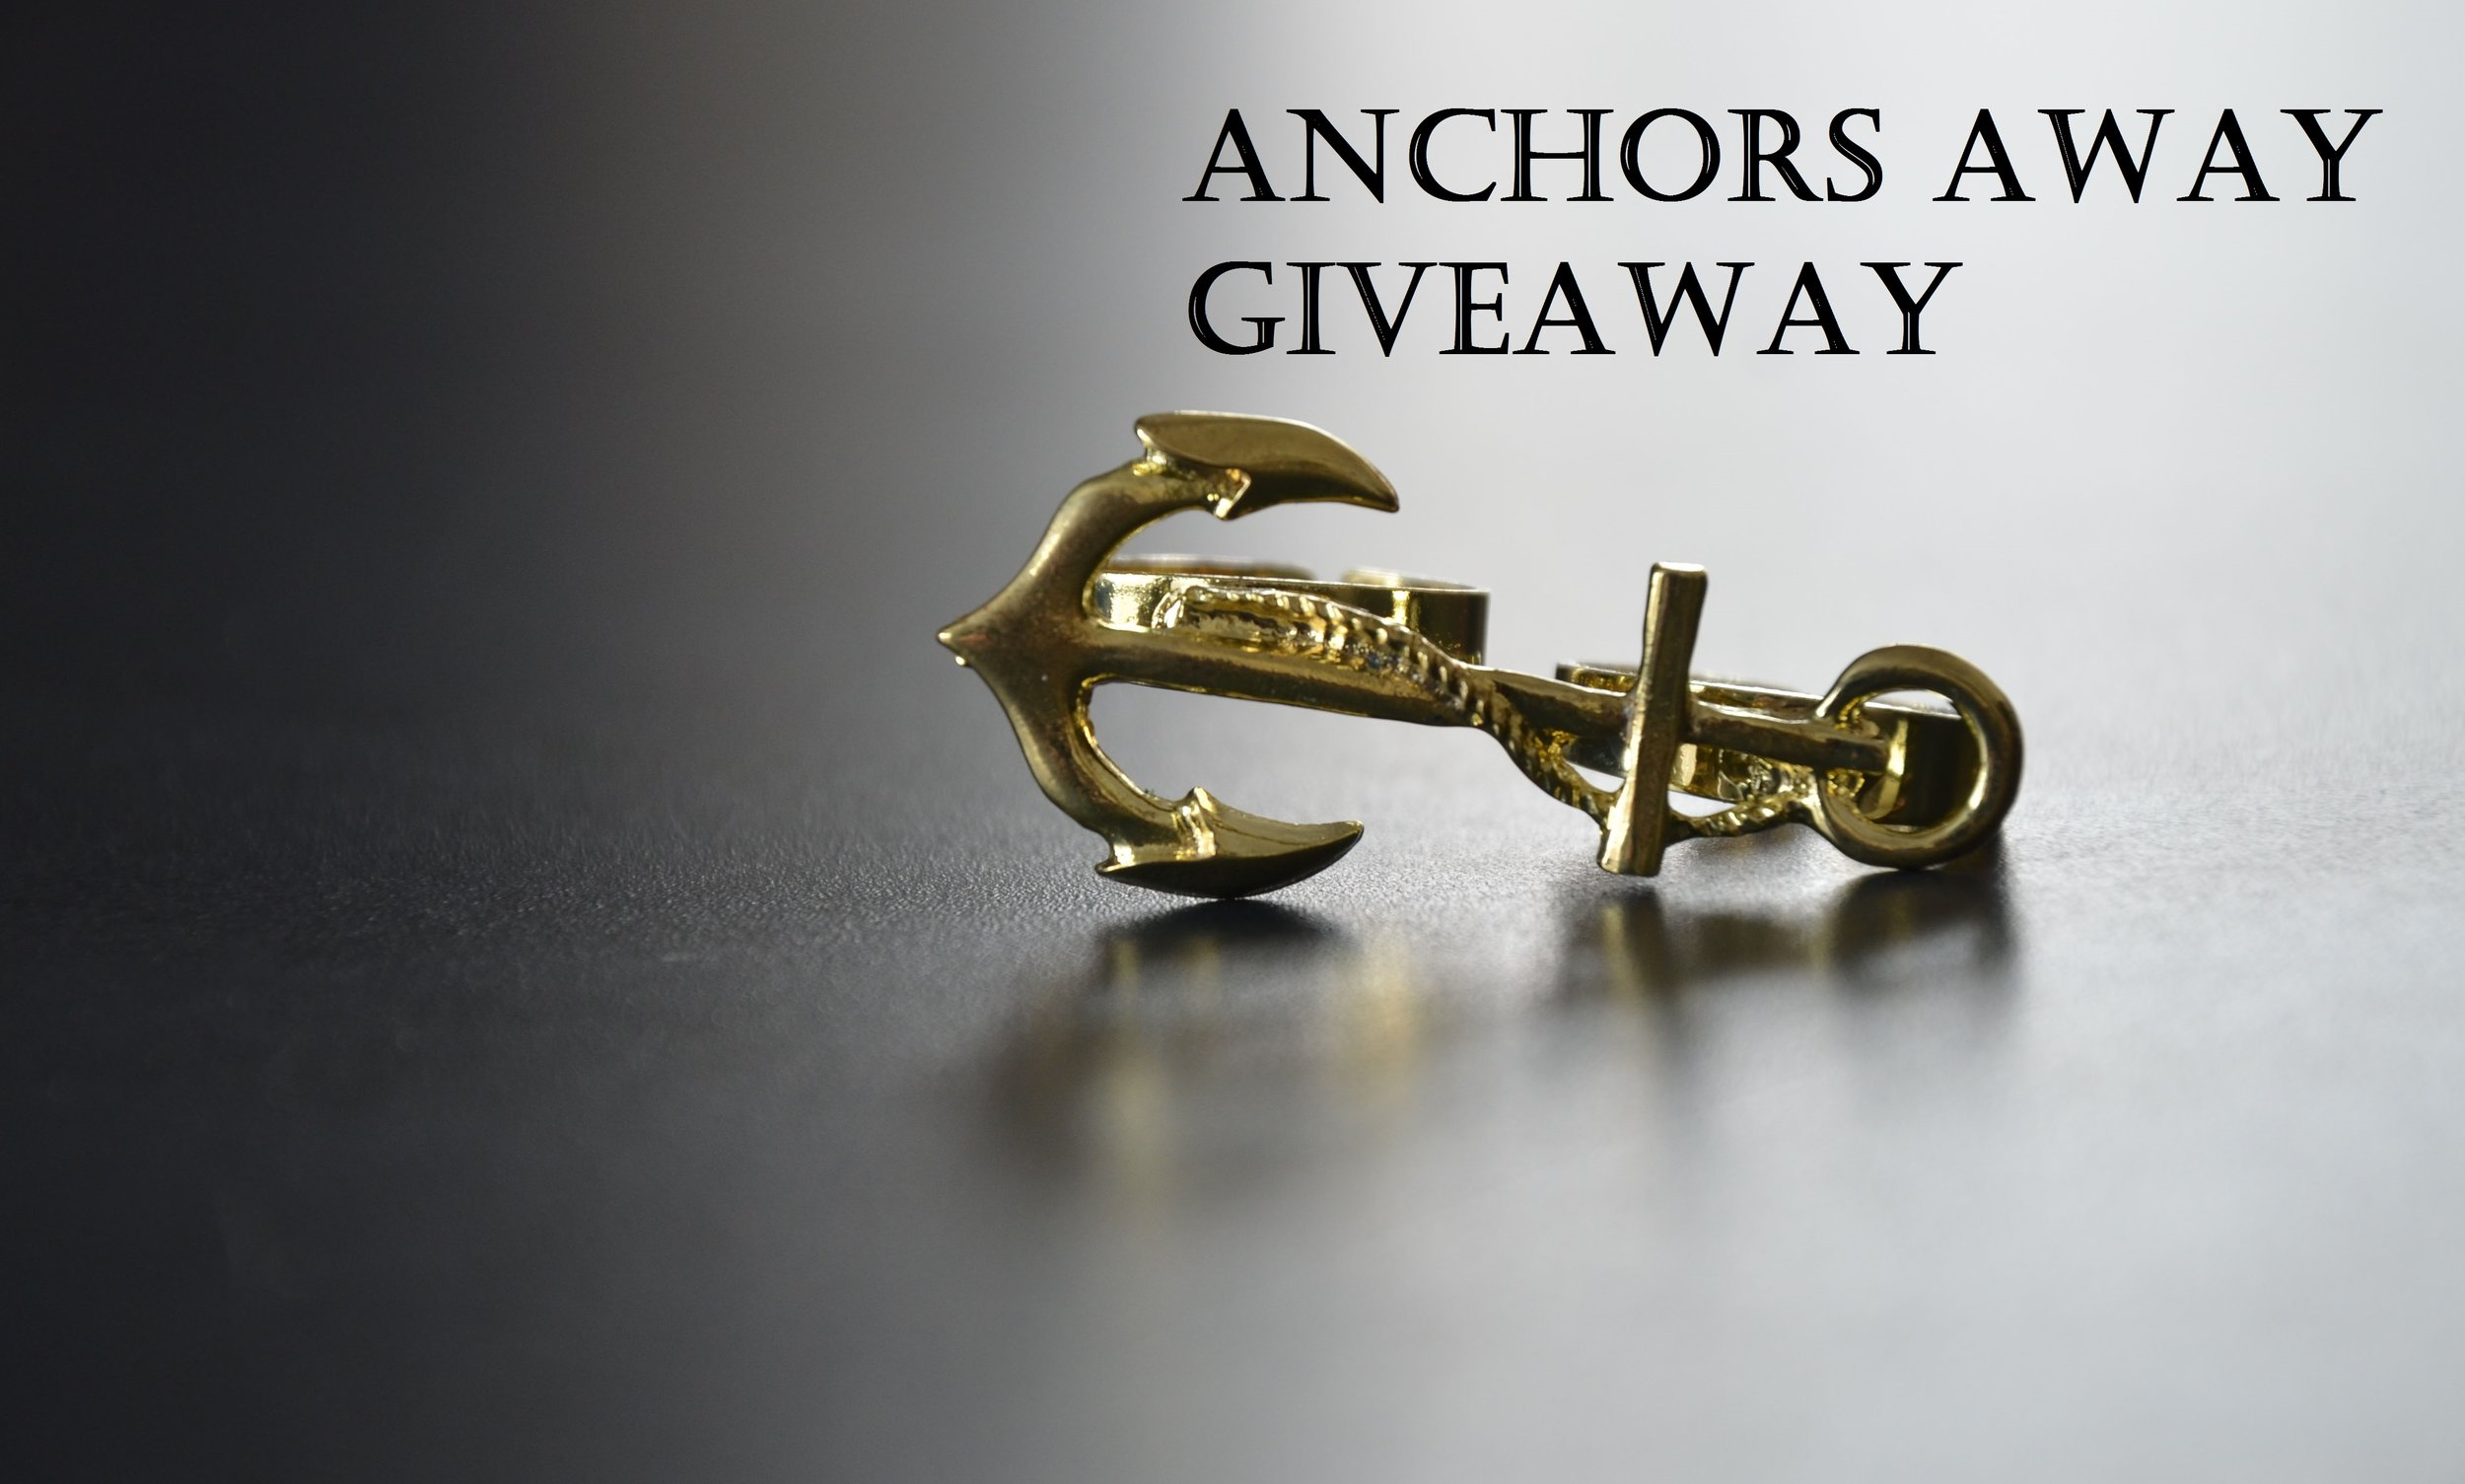 anchors away giveaway